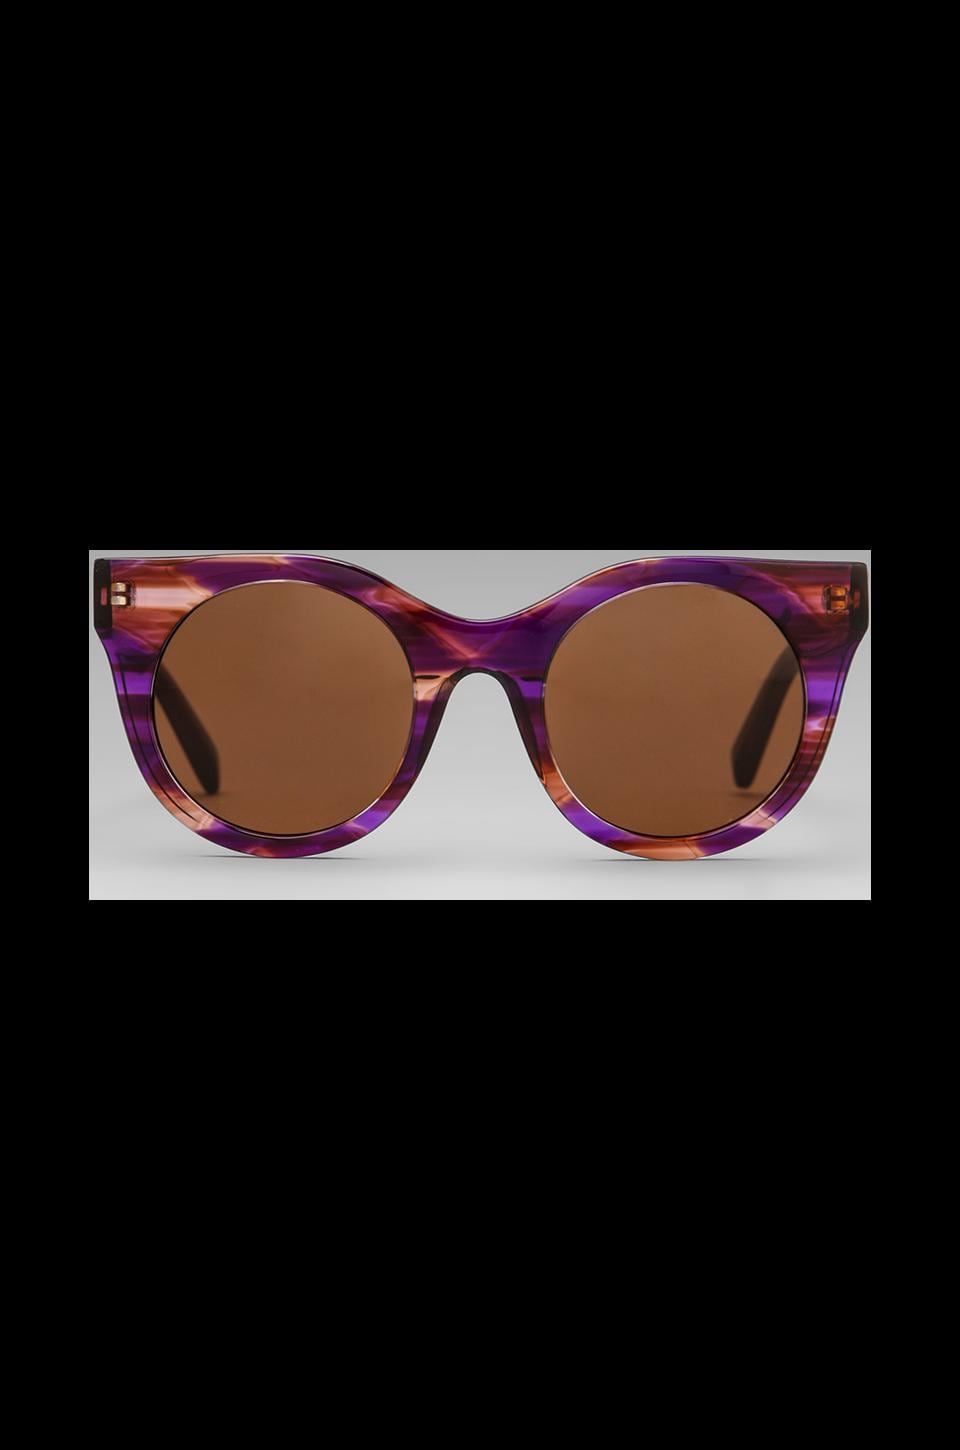 House of Harlow 1960 House of Harlow Daisy Sunglasses in Violet